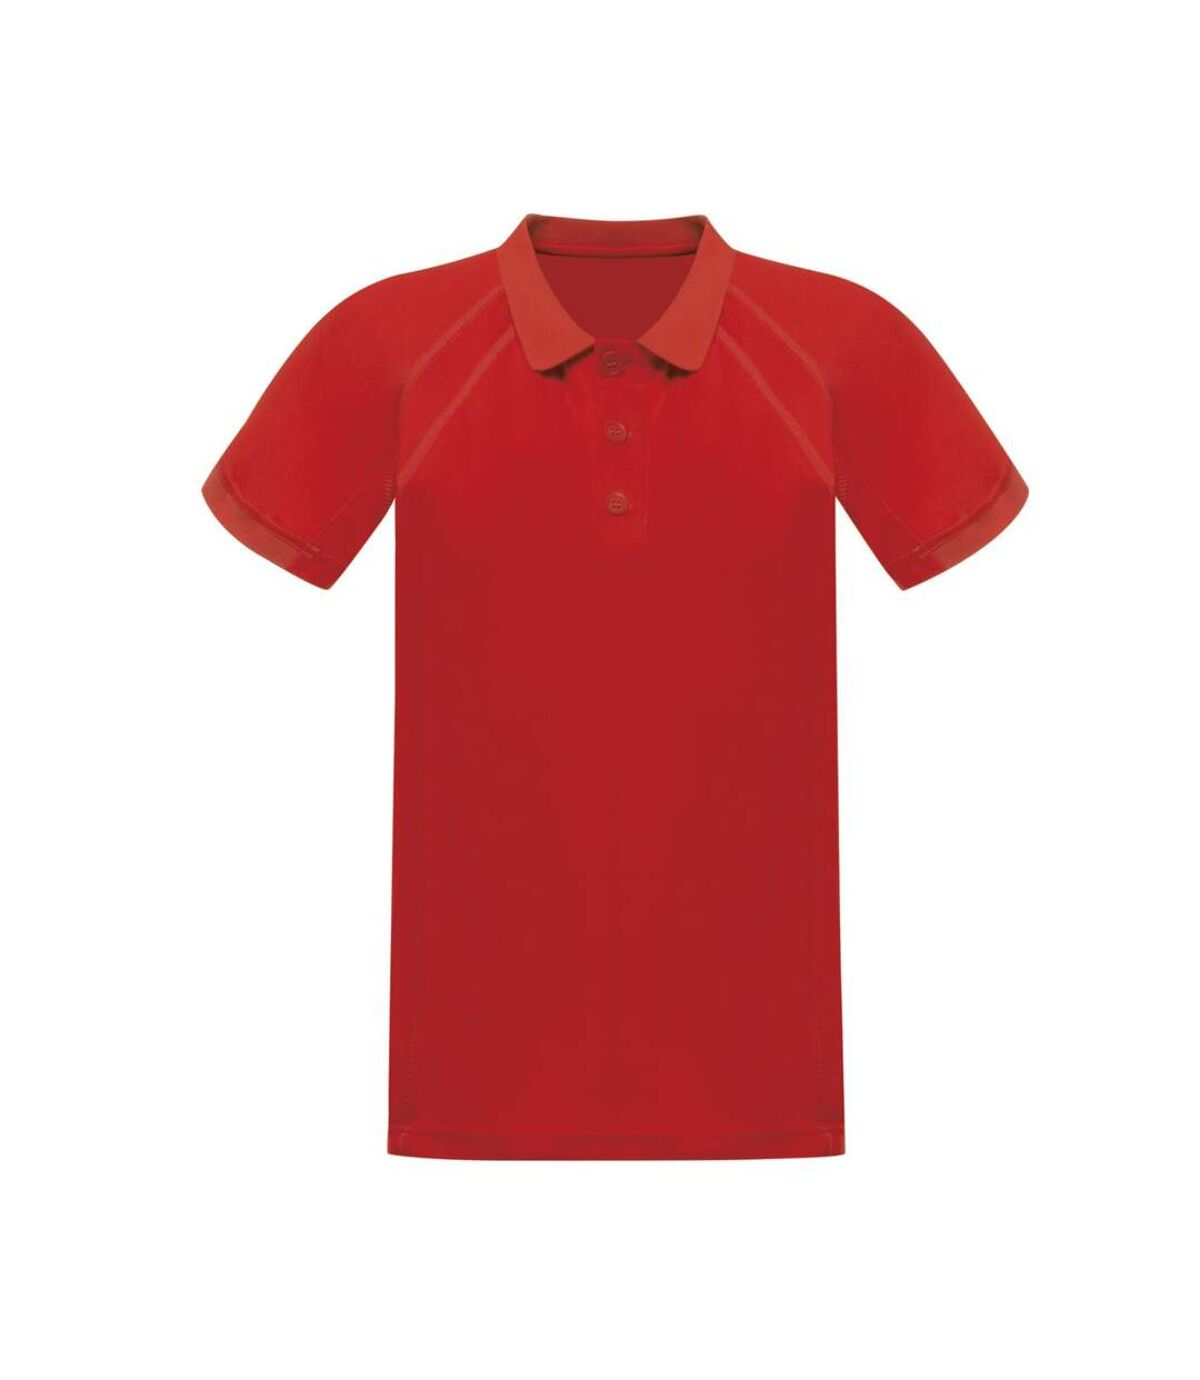 Regatta Professional Mens Coolweave Short Sleeve Polo Shirt (Classic Red) - UTRG2161